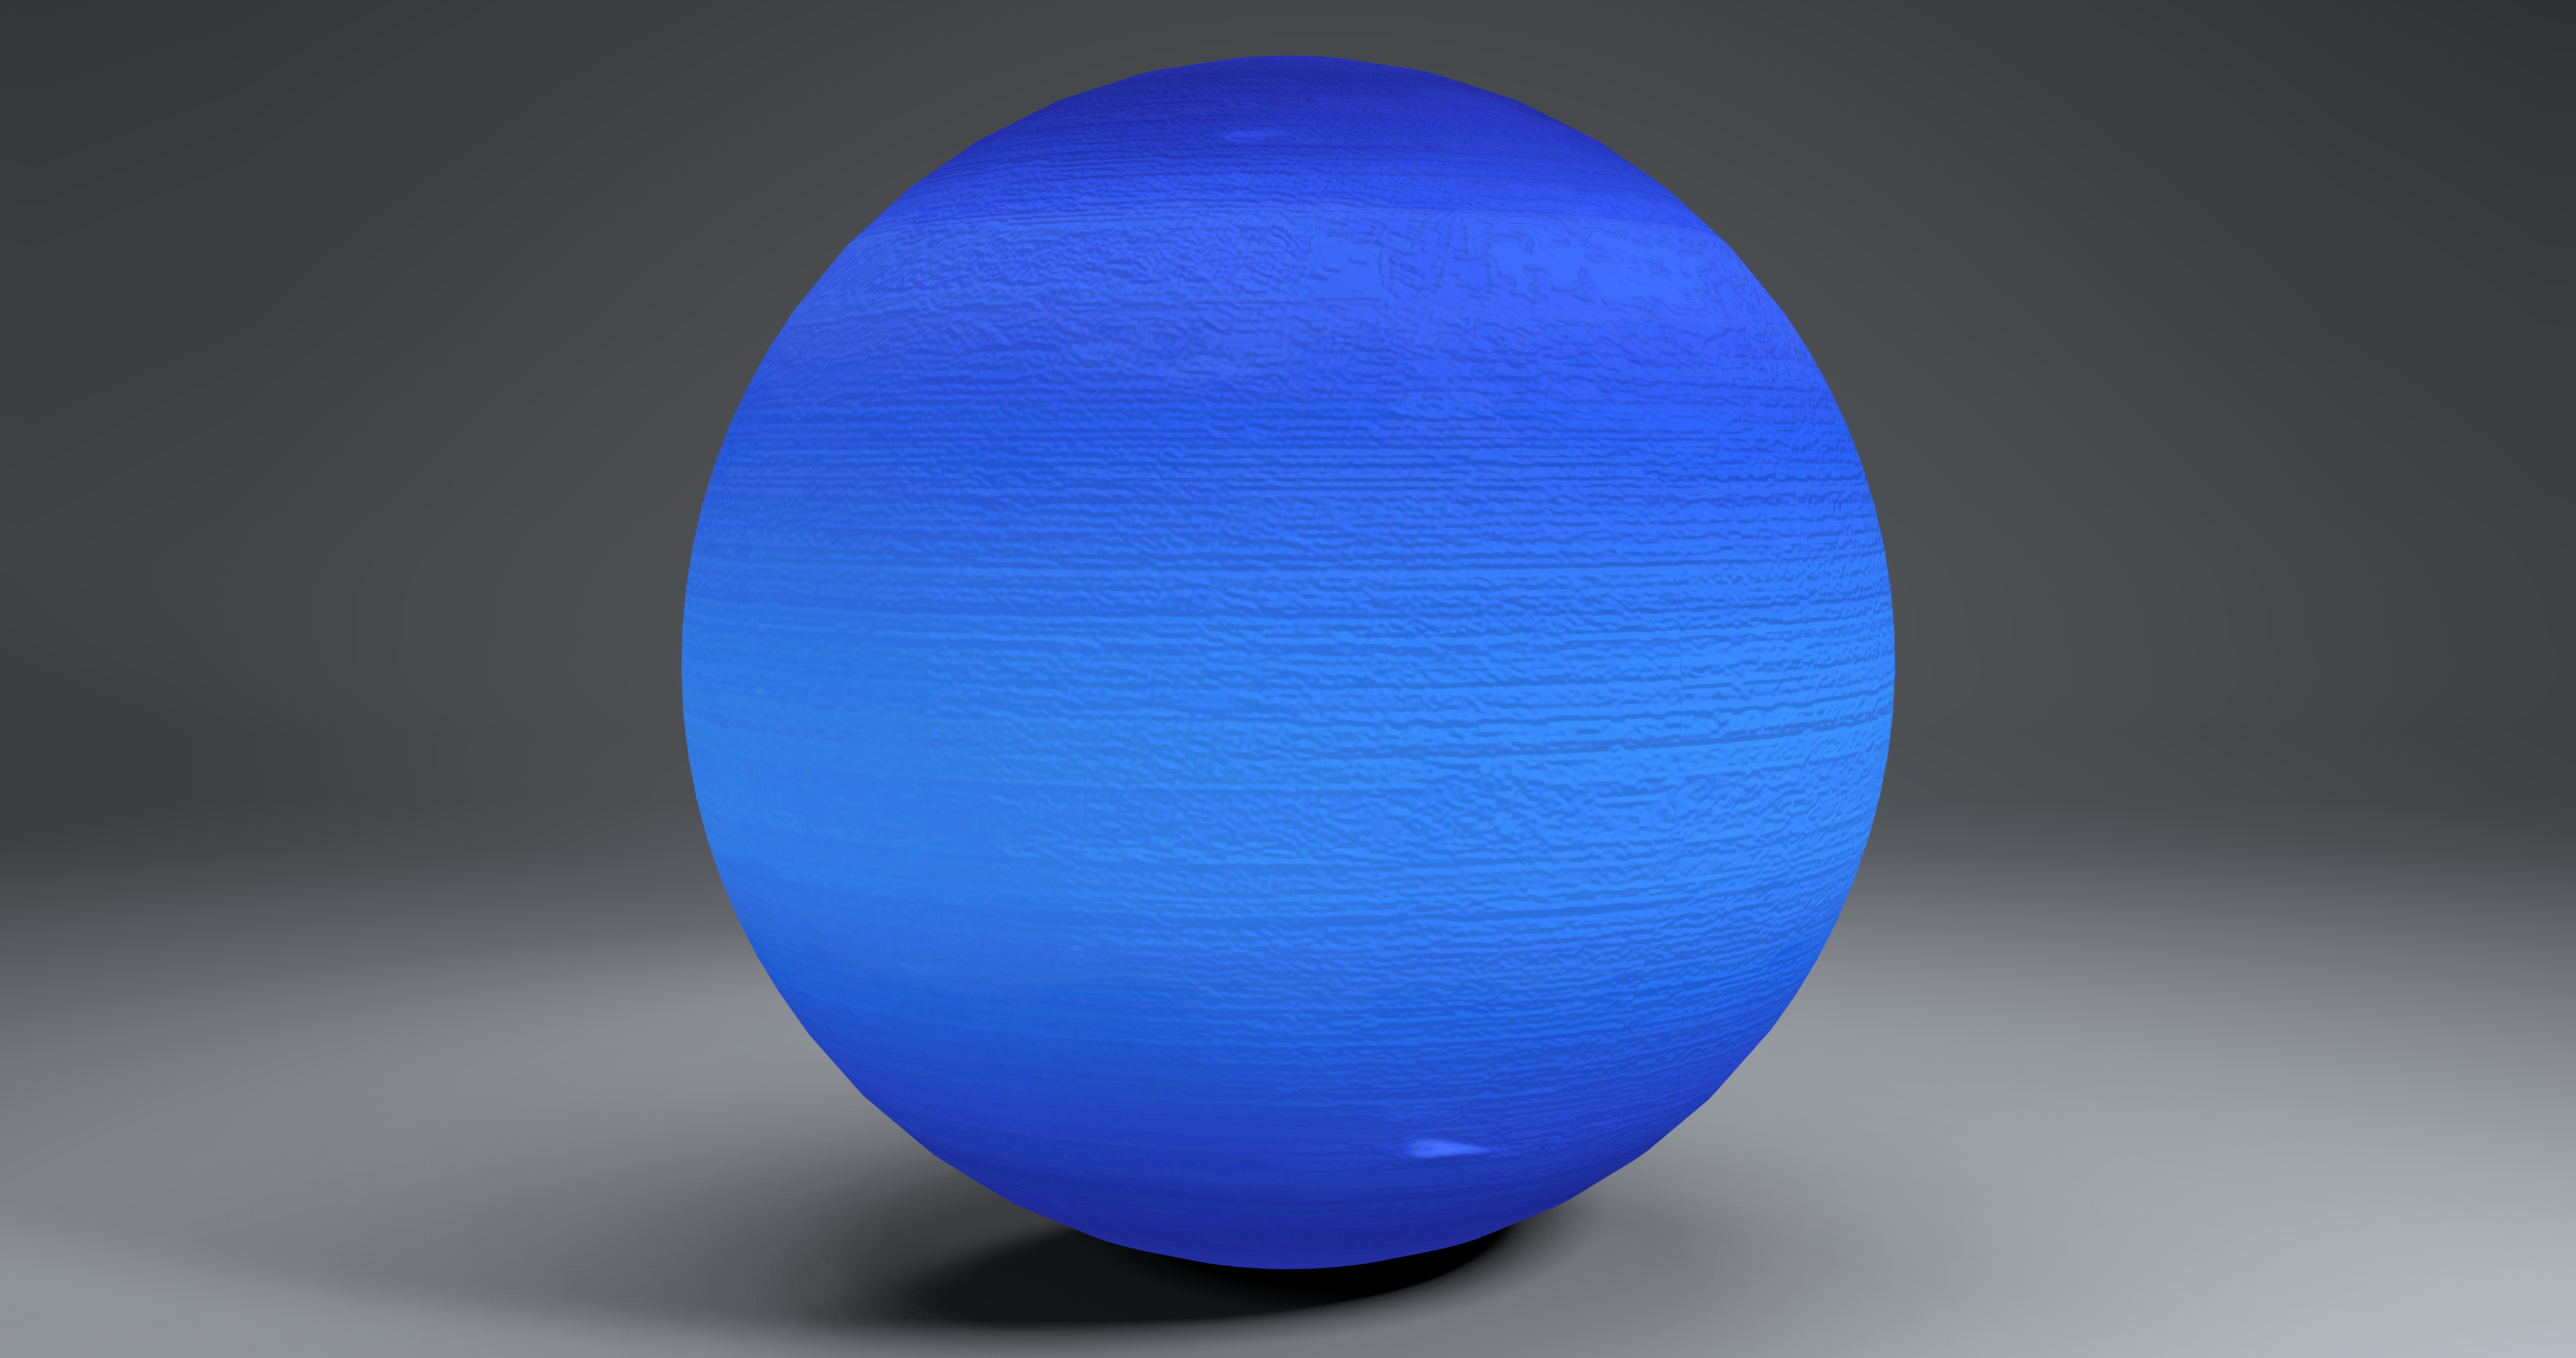 neptune 2k globe 3d model 3ds fbx blend dae obj 269173